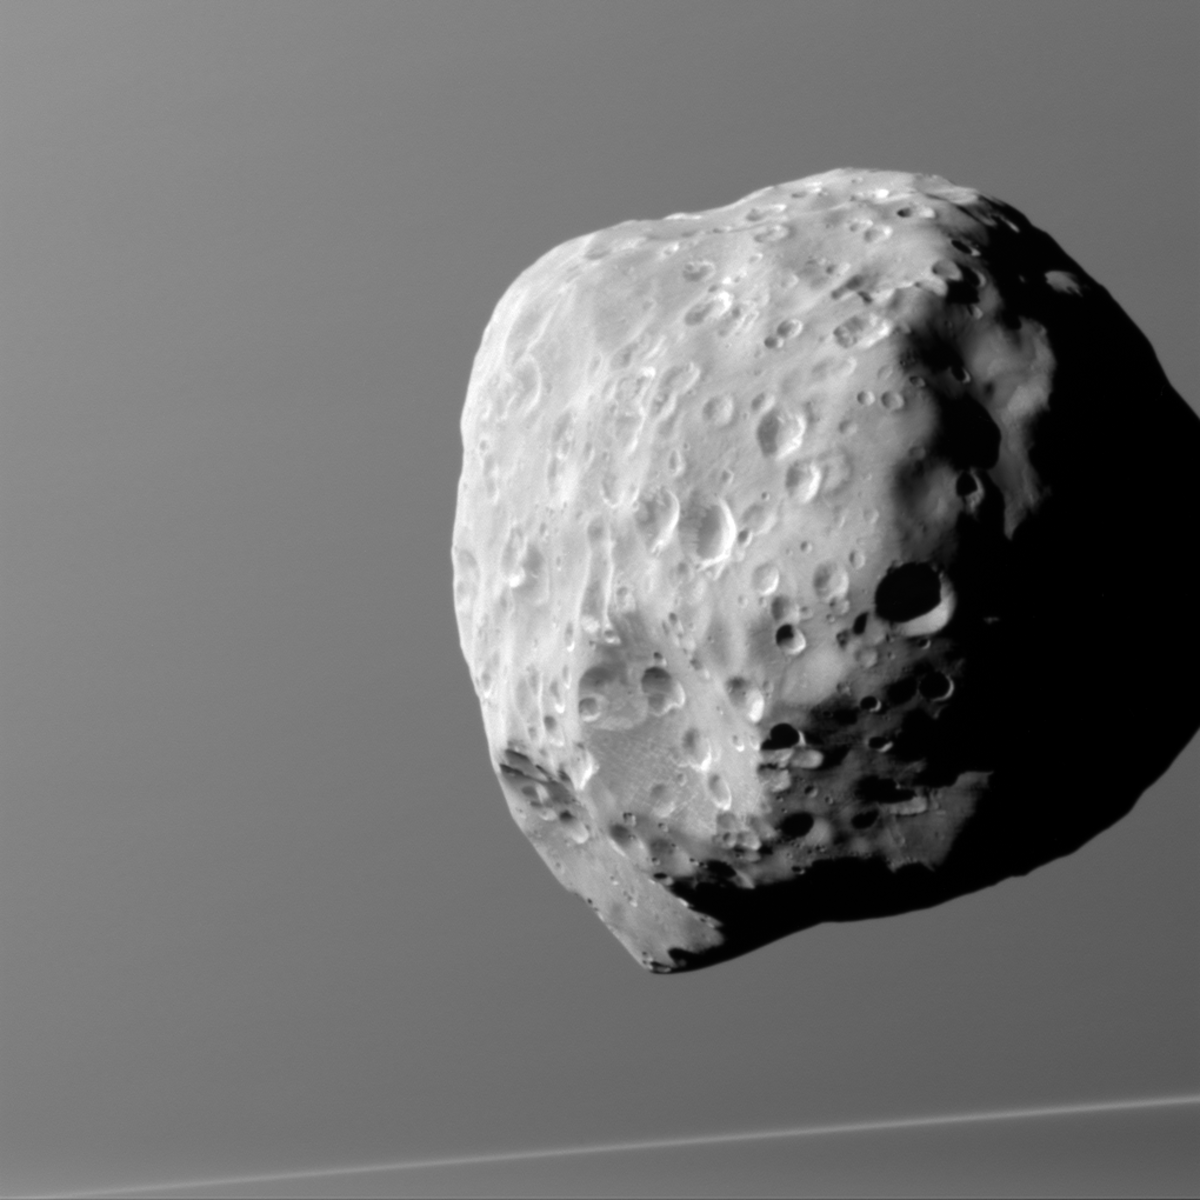 Epimetheus at 1,670 miles away, taken on Dec. 6, 2015.